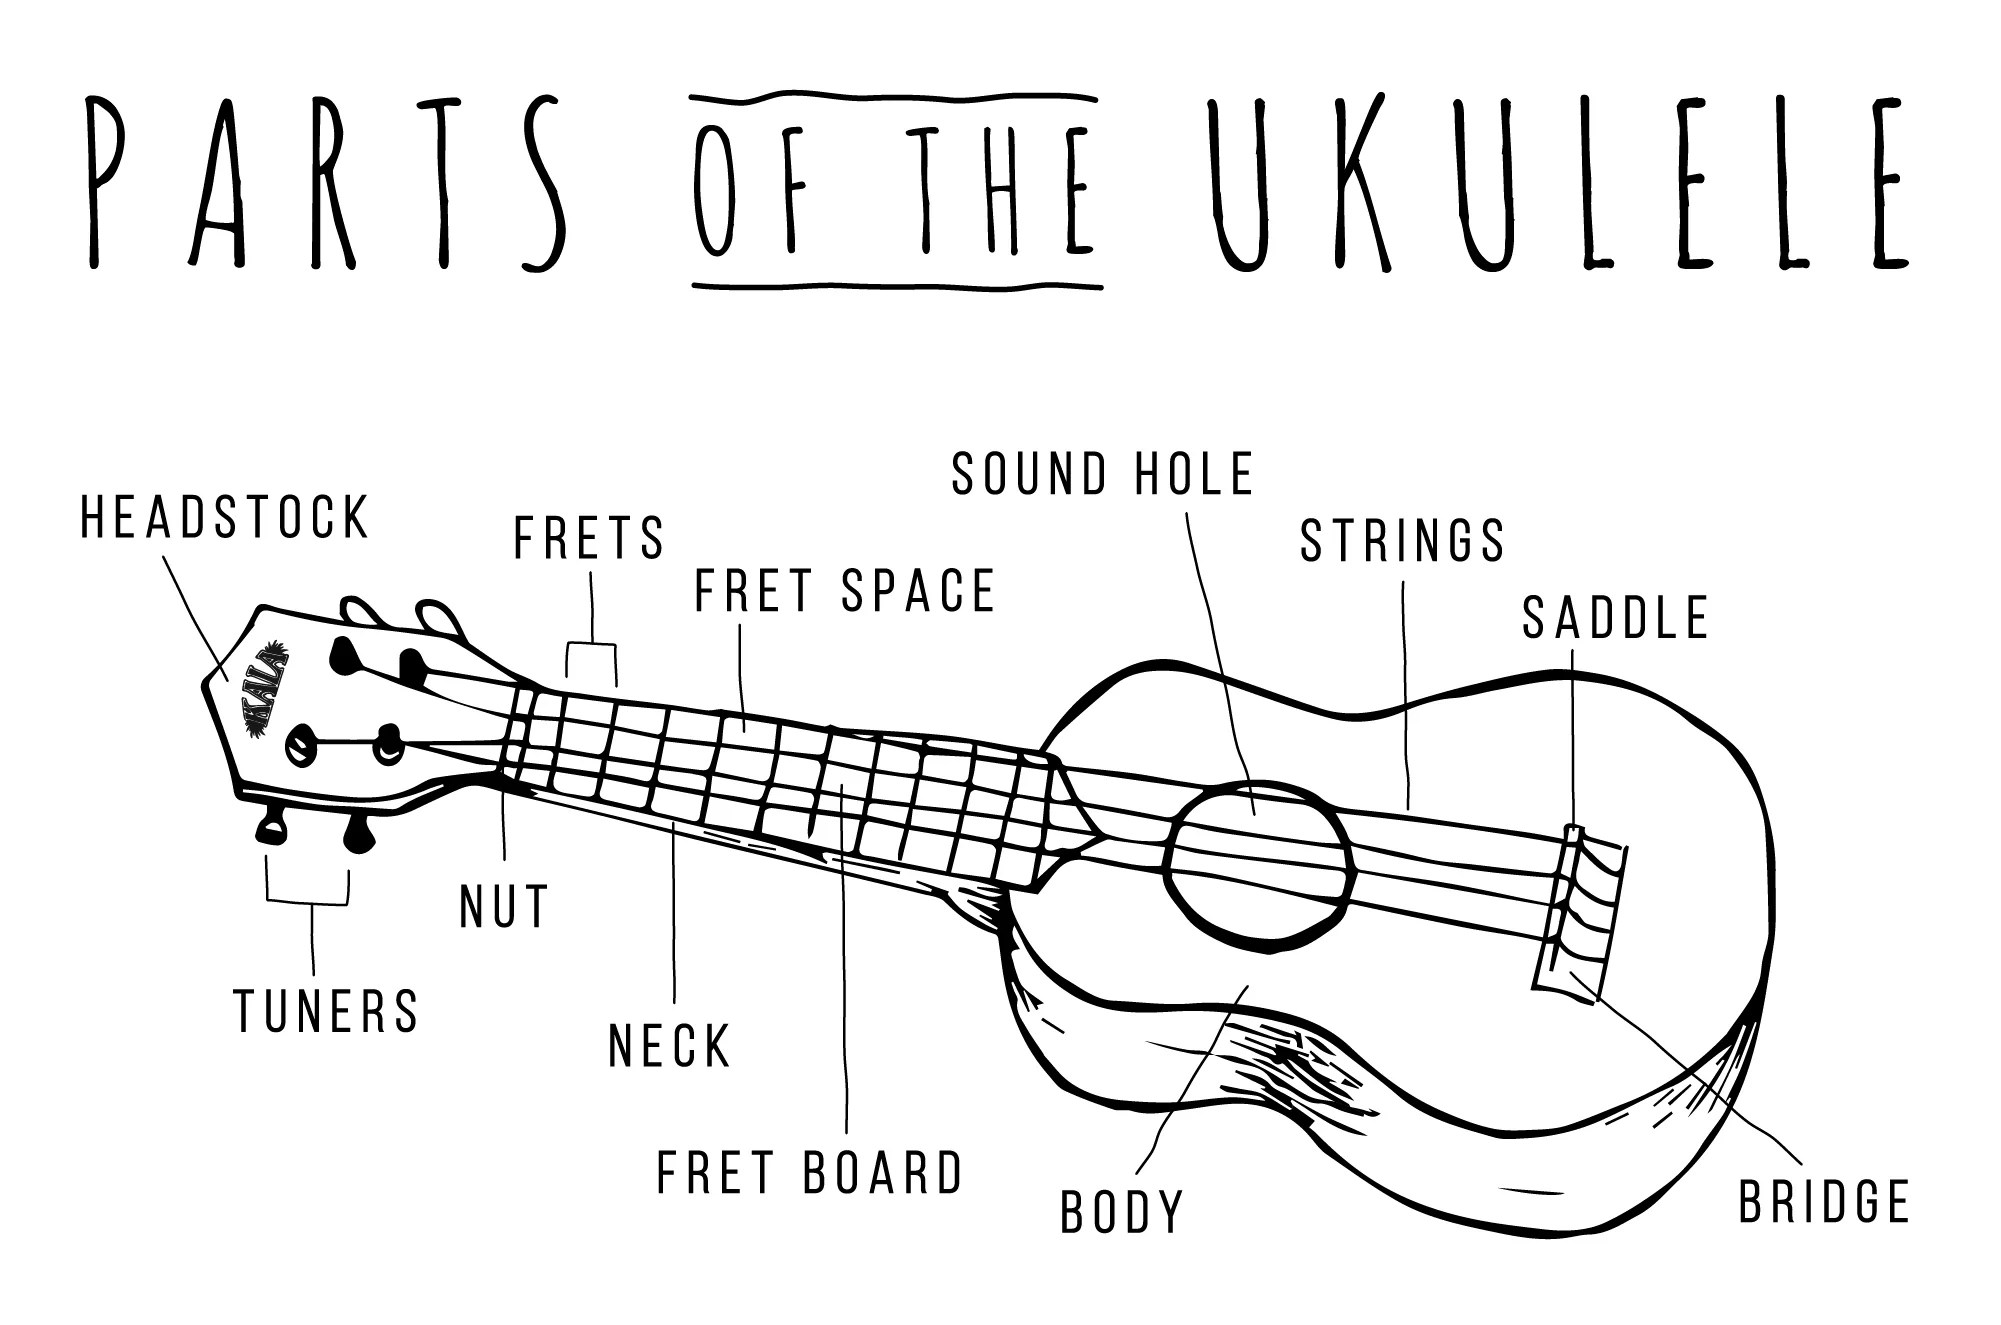 the diagram shows parts of a guitar including the body neck and